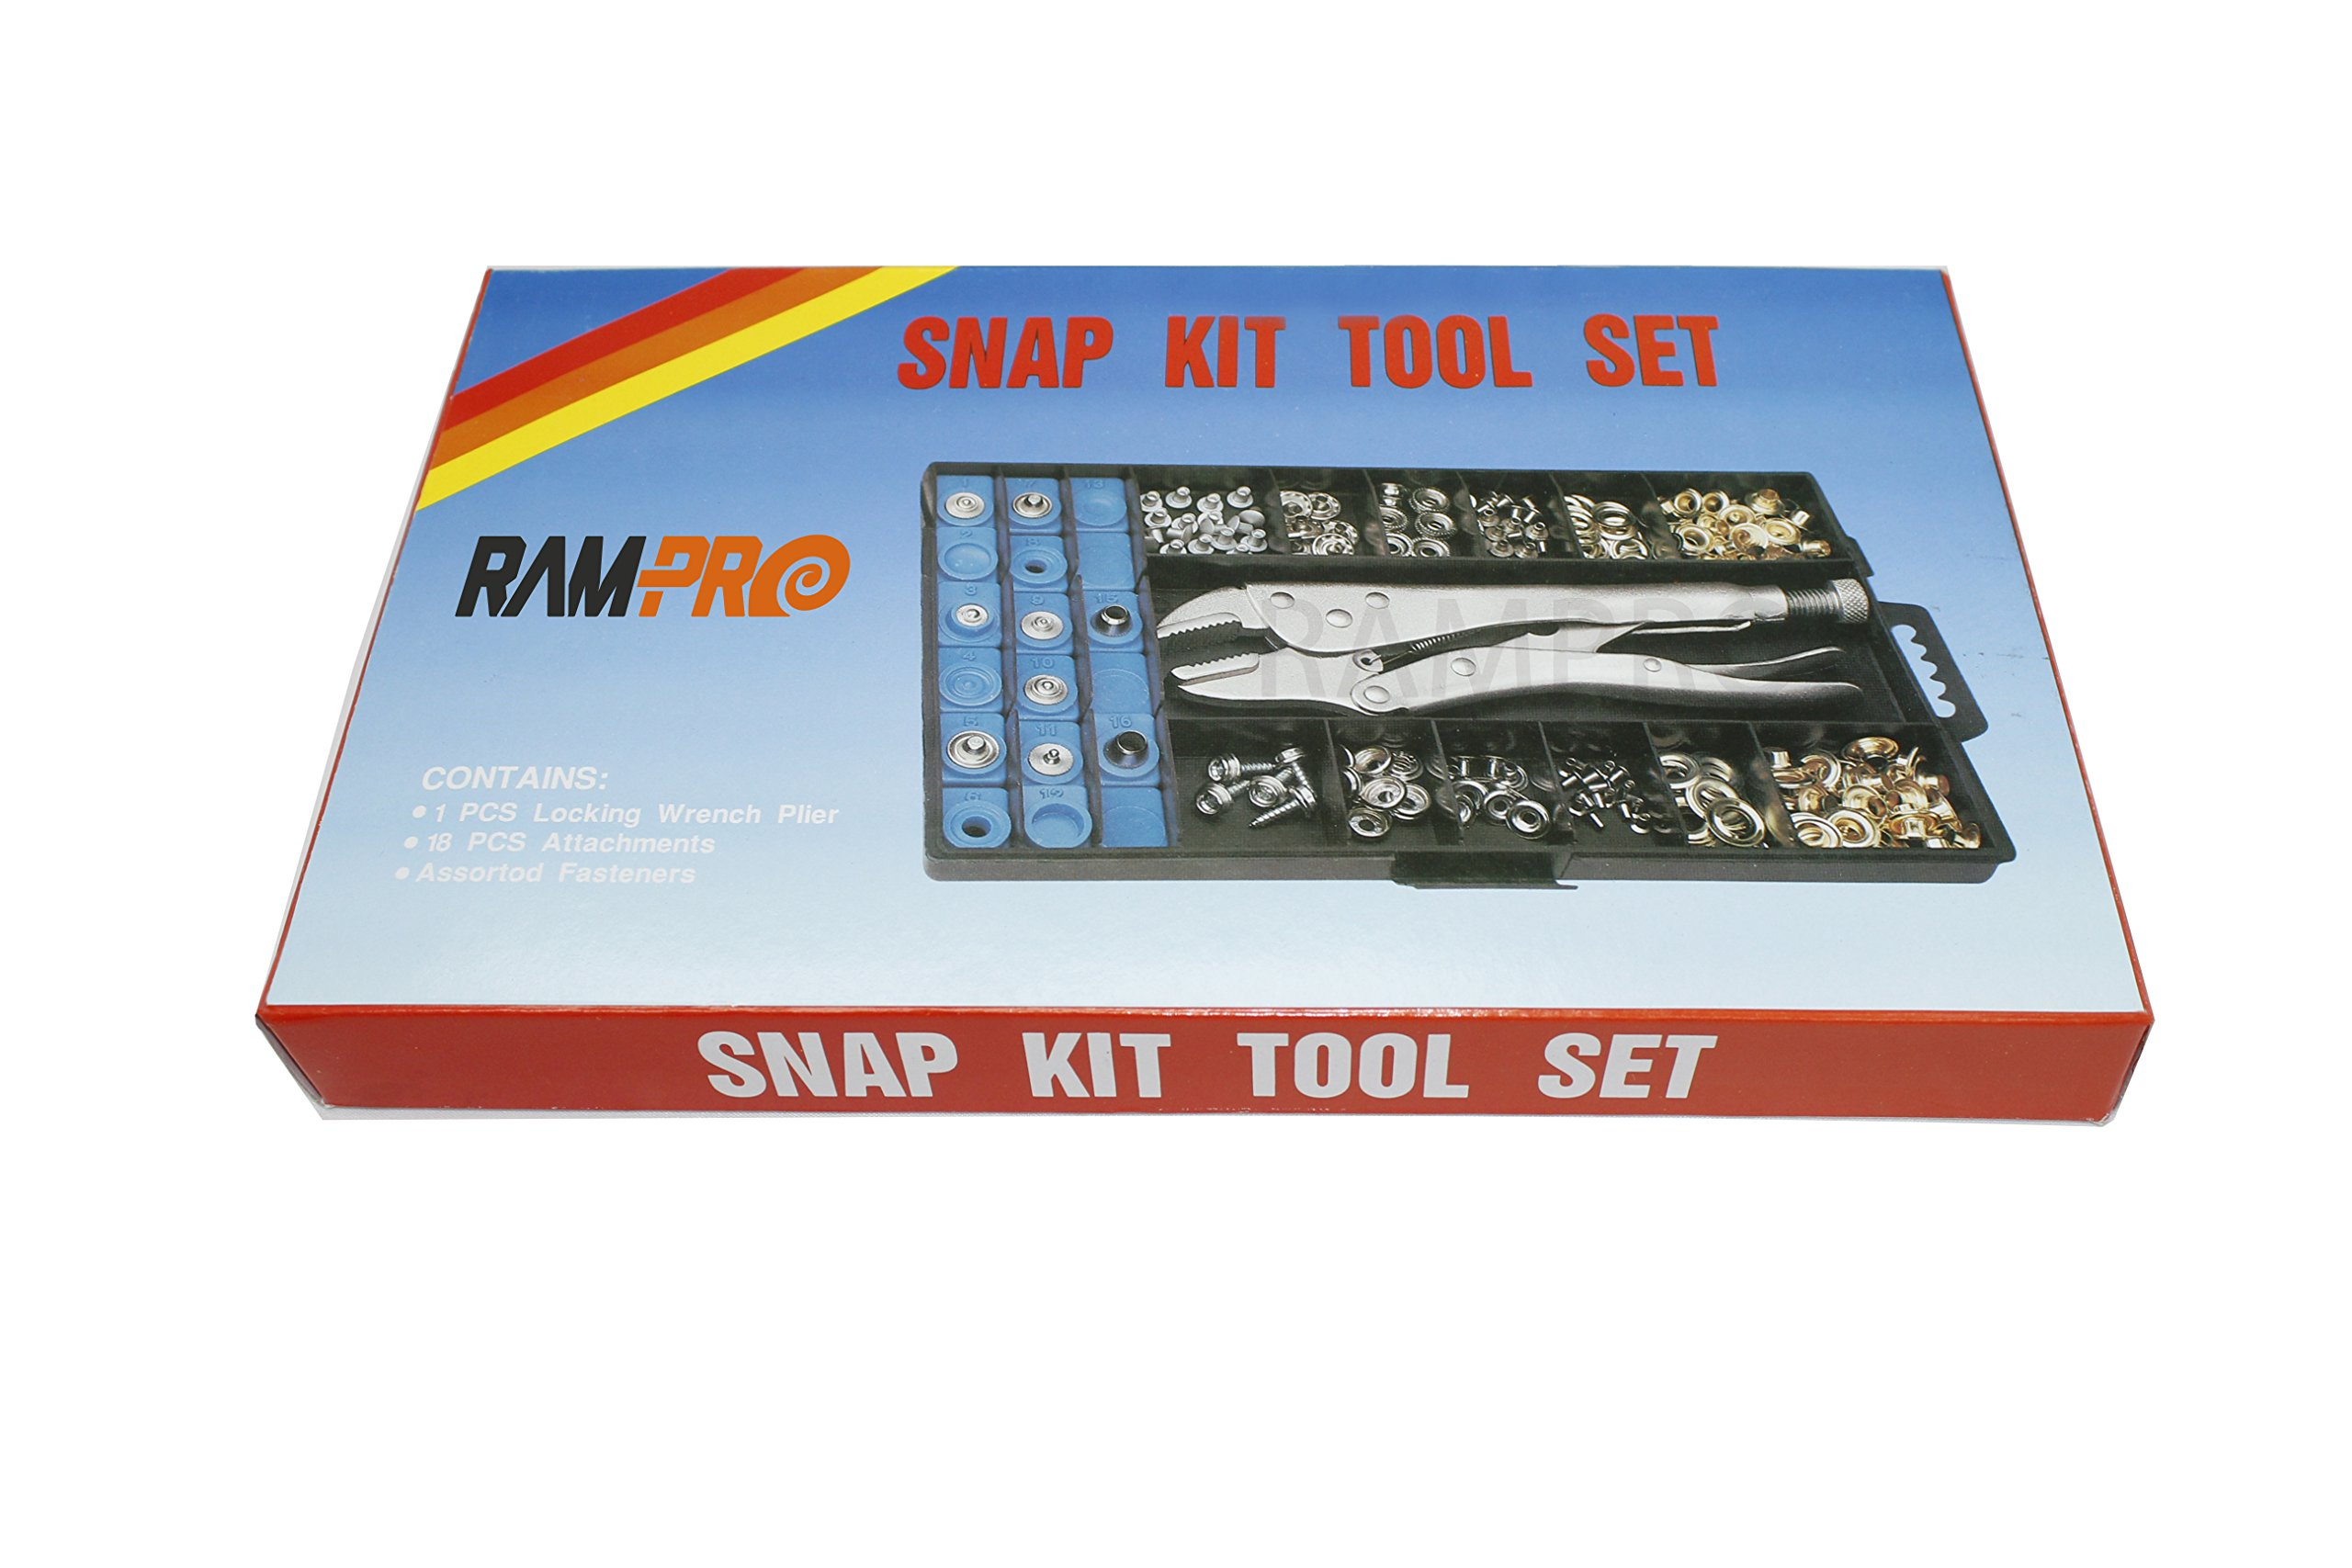 RAM-PRO Snap, Grommet, Rivet Tool Kit for Tarps Complete With Over 400 Pieces - Boat Covers, Canopies, Canvas Repair, Grommet Replacement by Ram-Pro (Image #1)